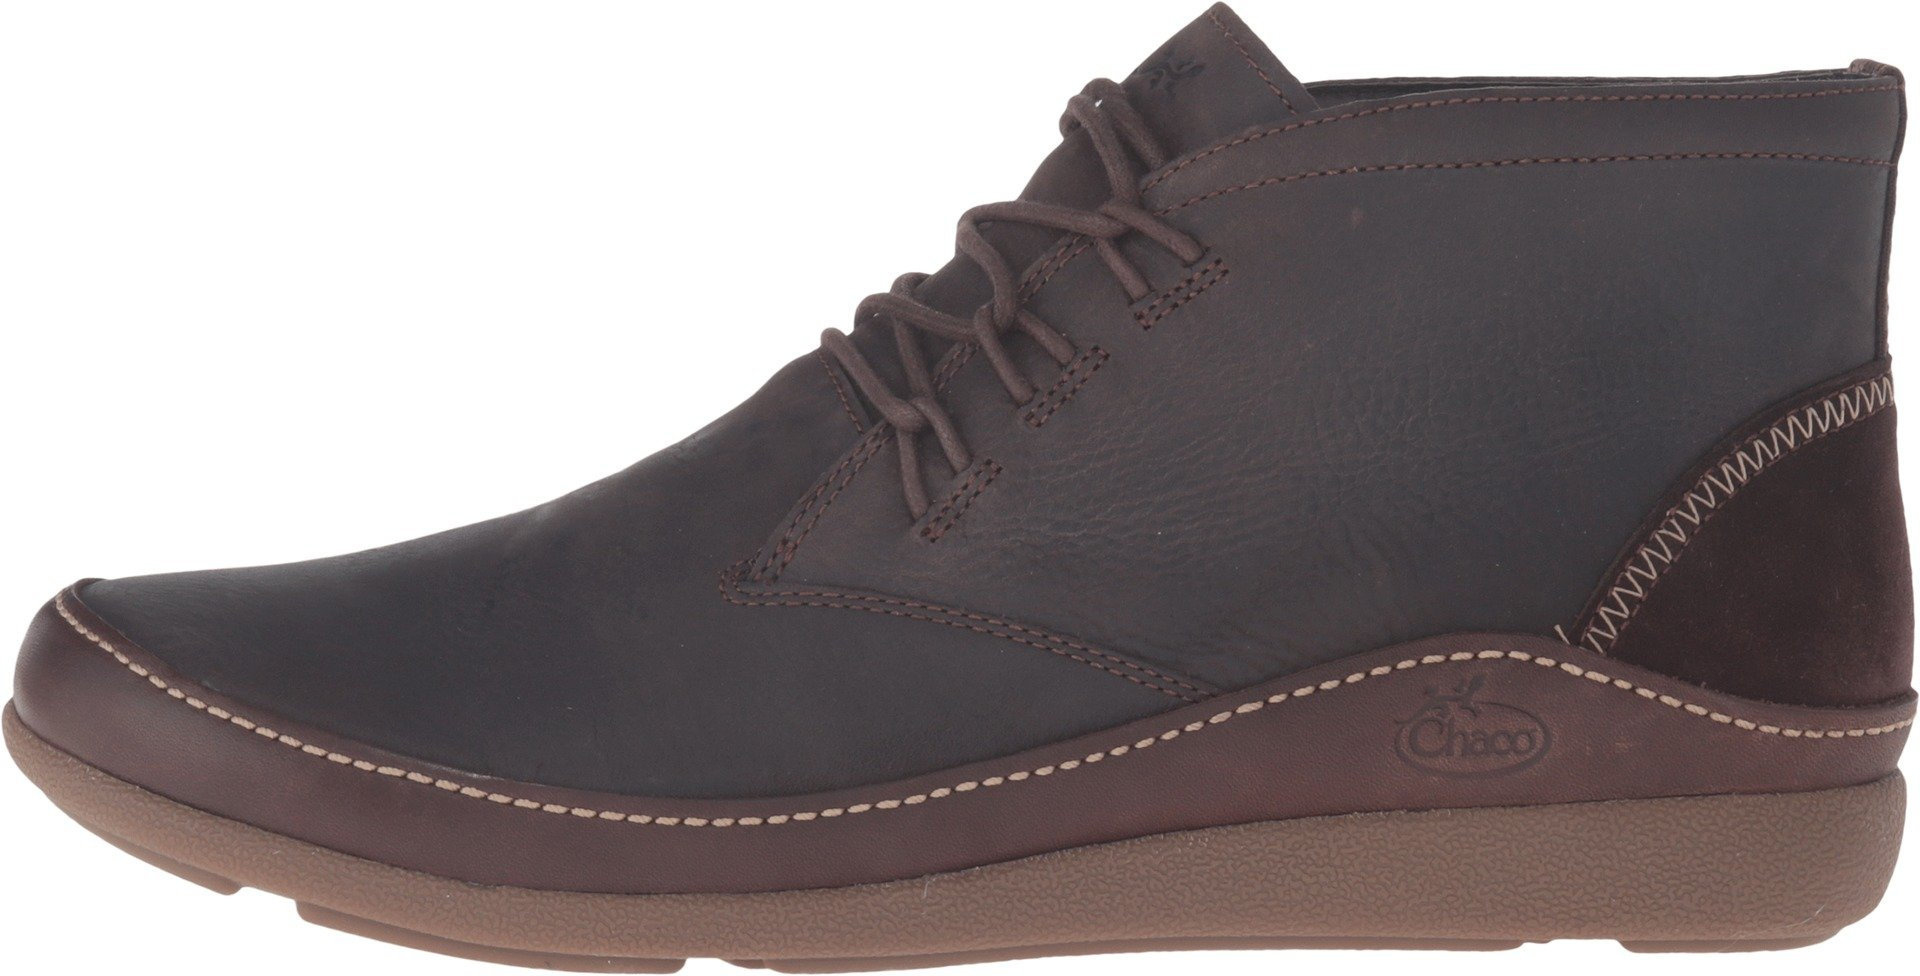 Chaco Men's Montrose Chukka-M Boot, Java, 9.5 M US by Chaco (Image #2)